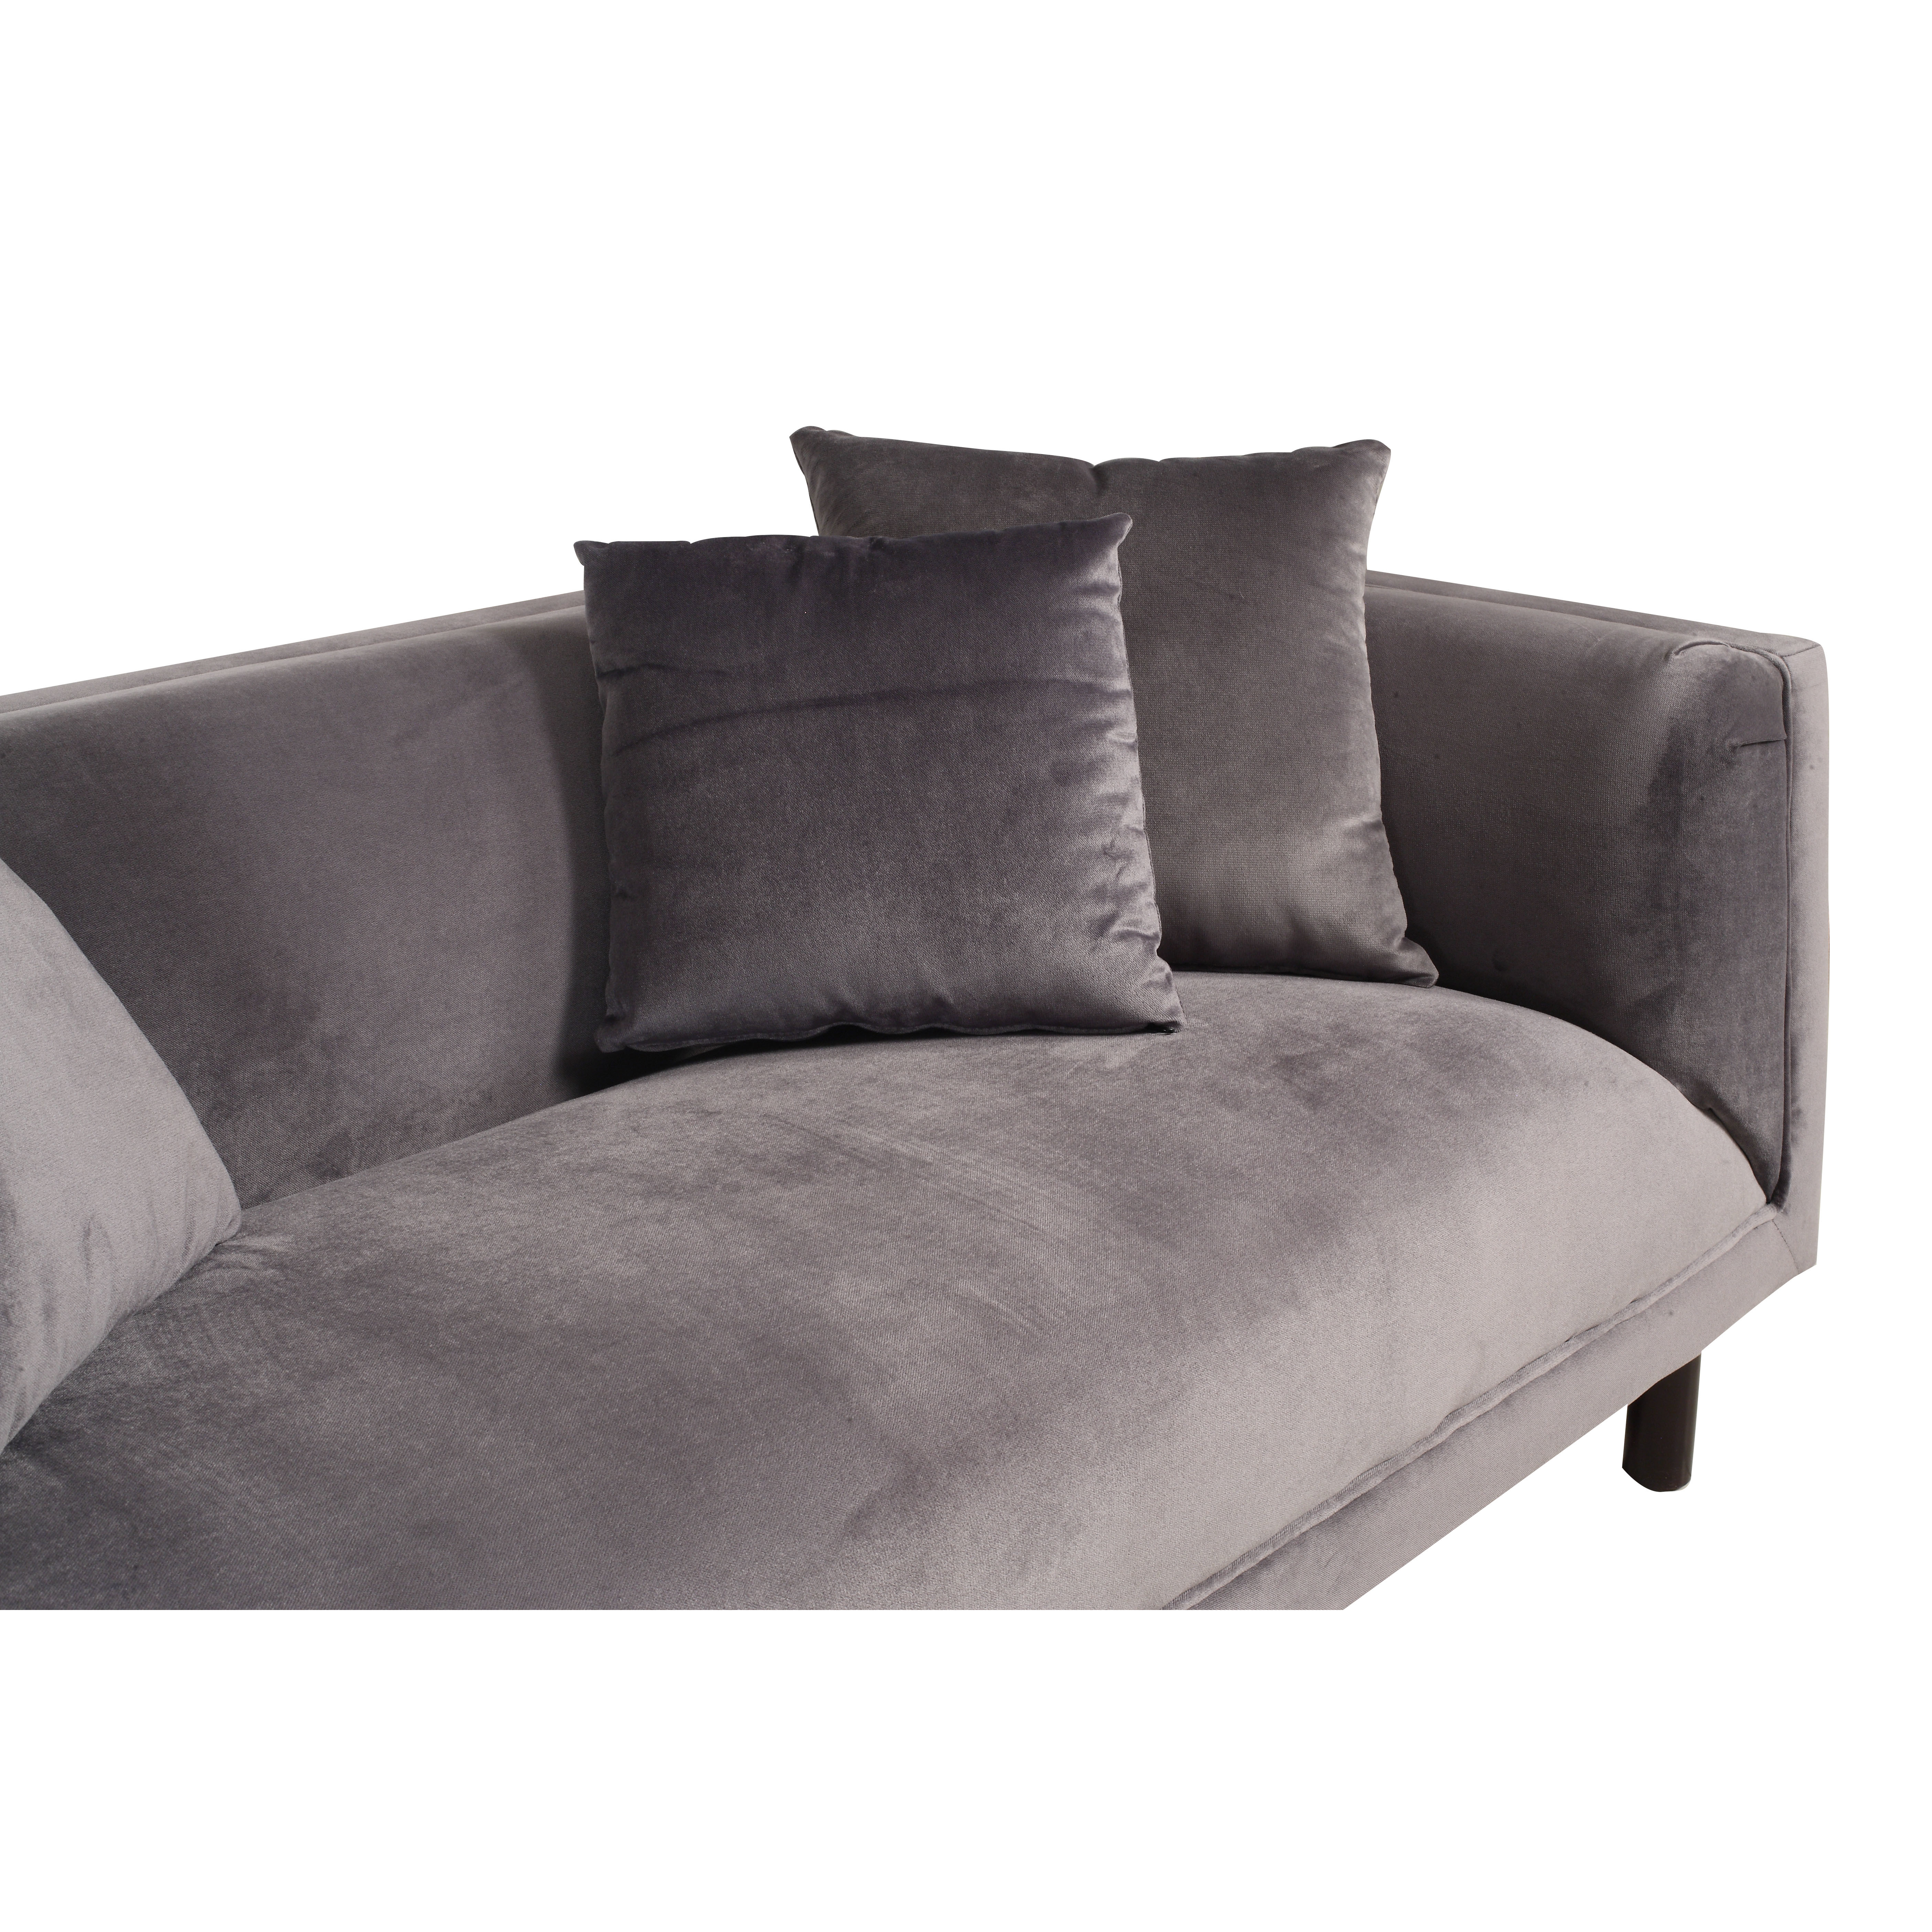 Amazing Mid Century Modern Sofas 79 About Remodel Sofas And Couches Set  With Mid Century Modern Sofas